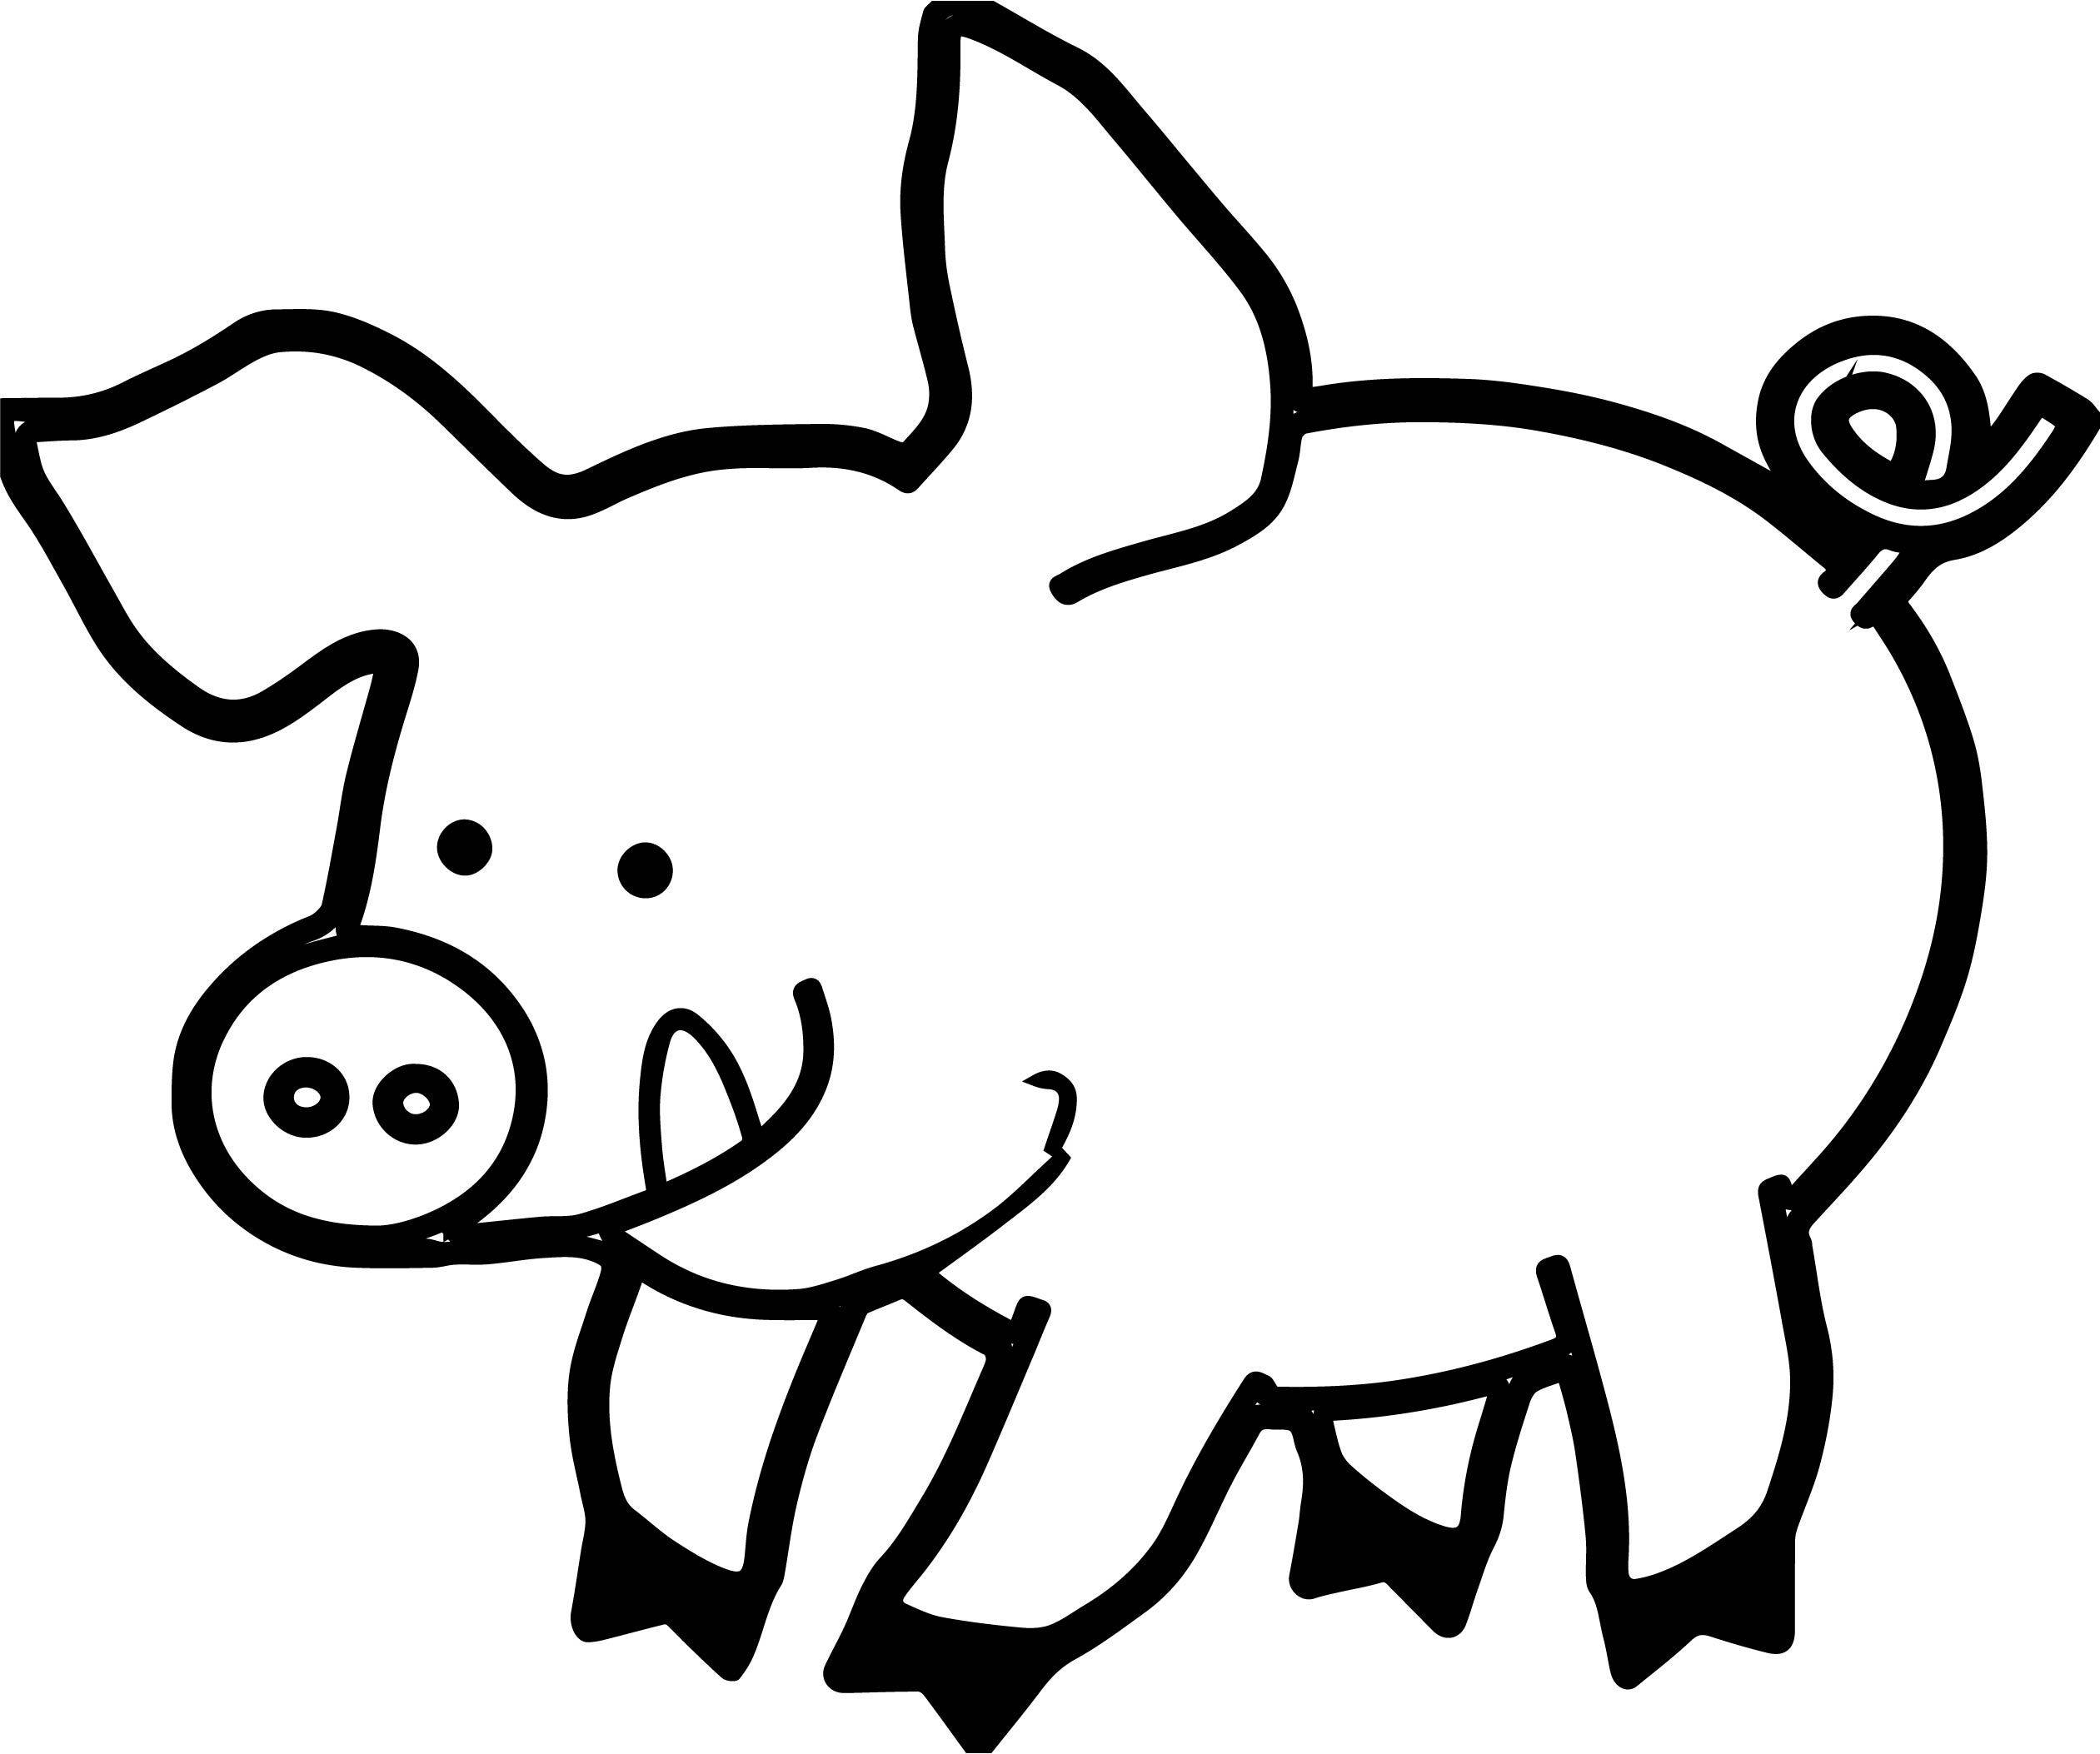 Pig Piglet Coloring Page | Wecoloringpage.com